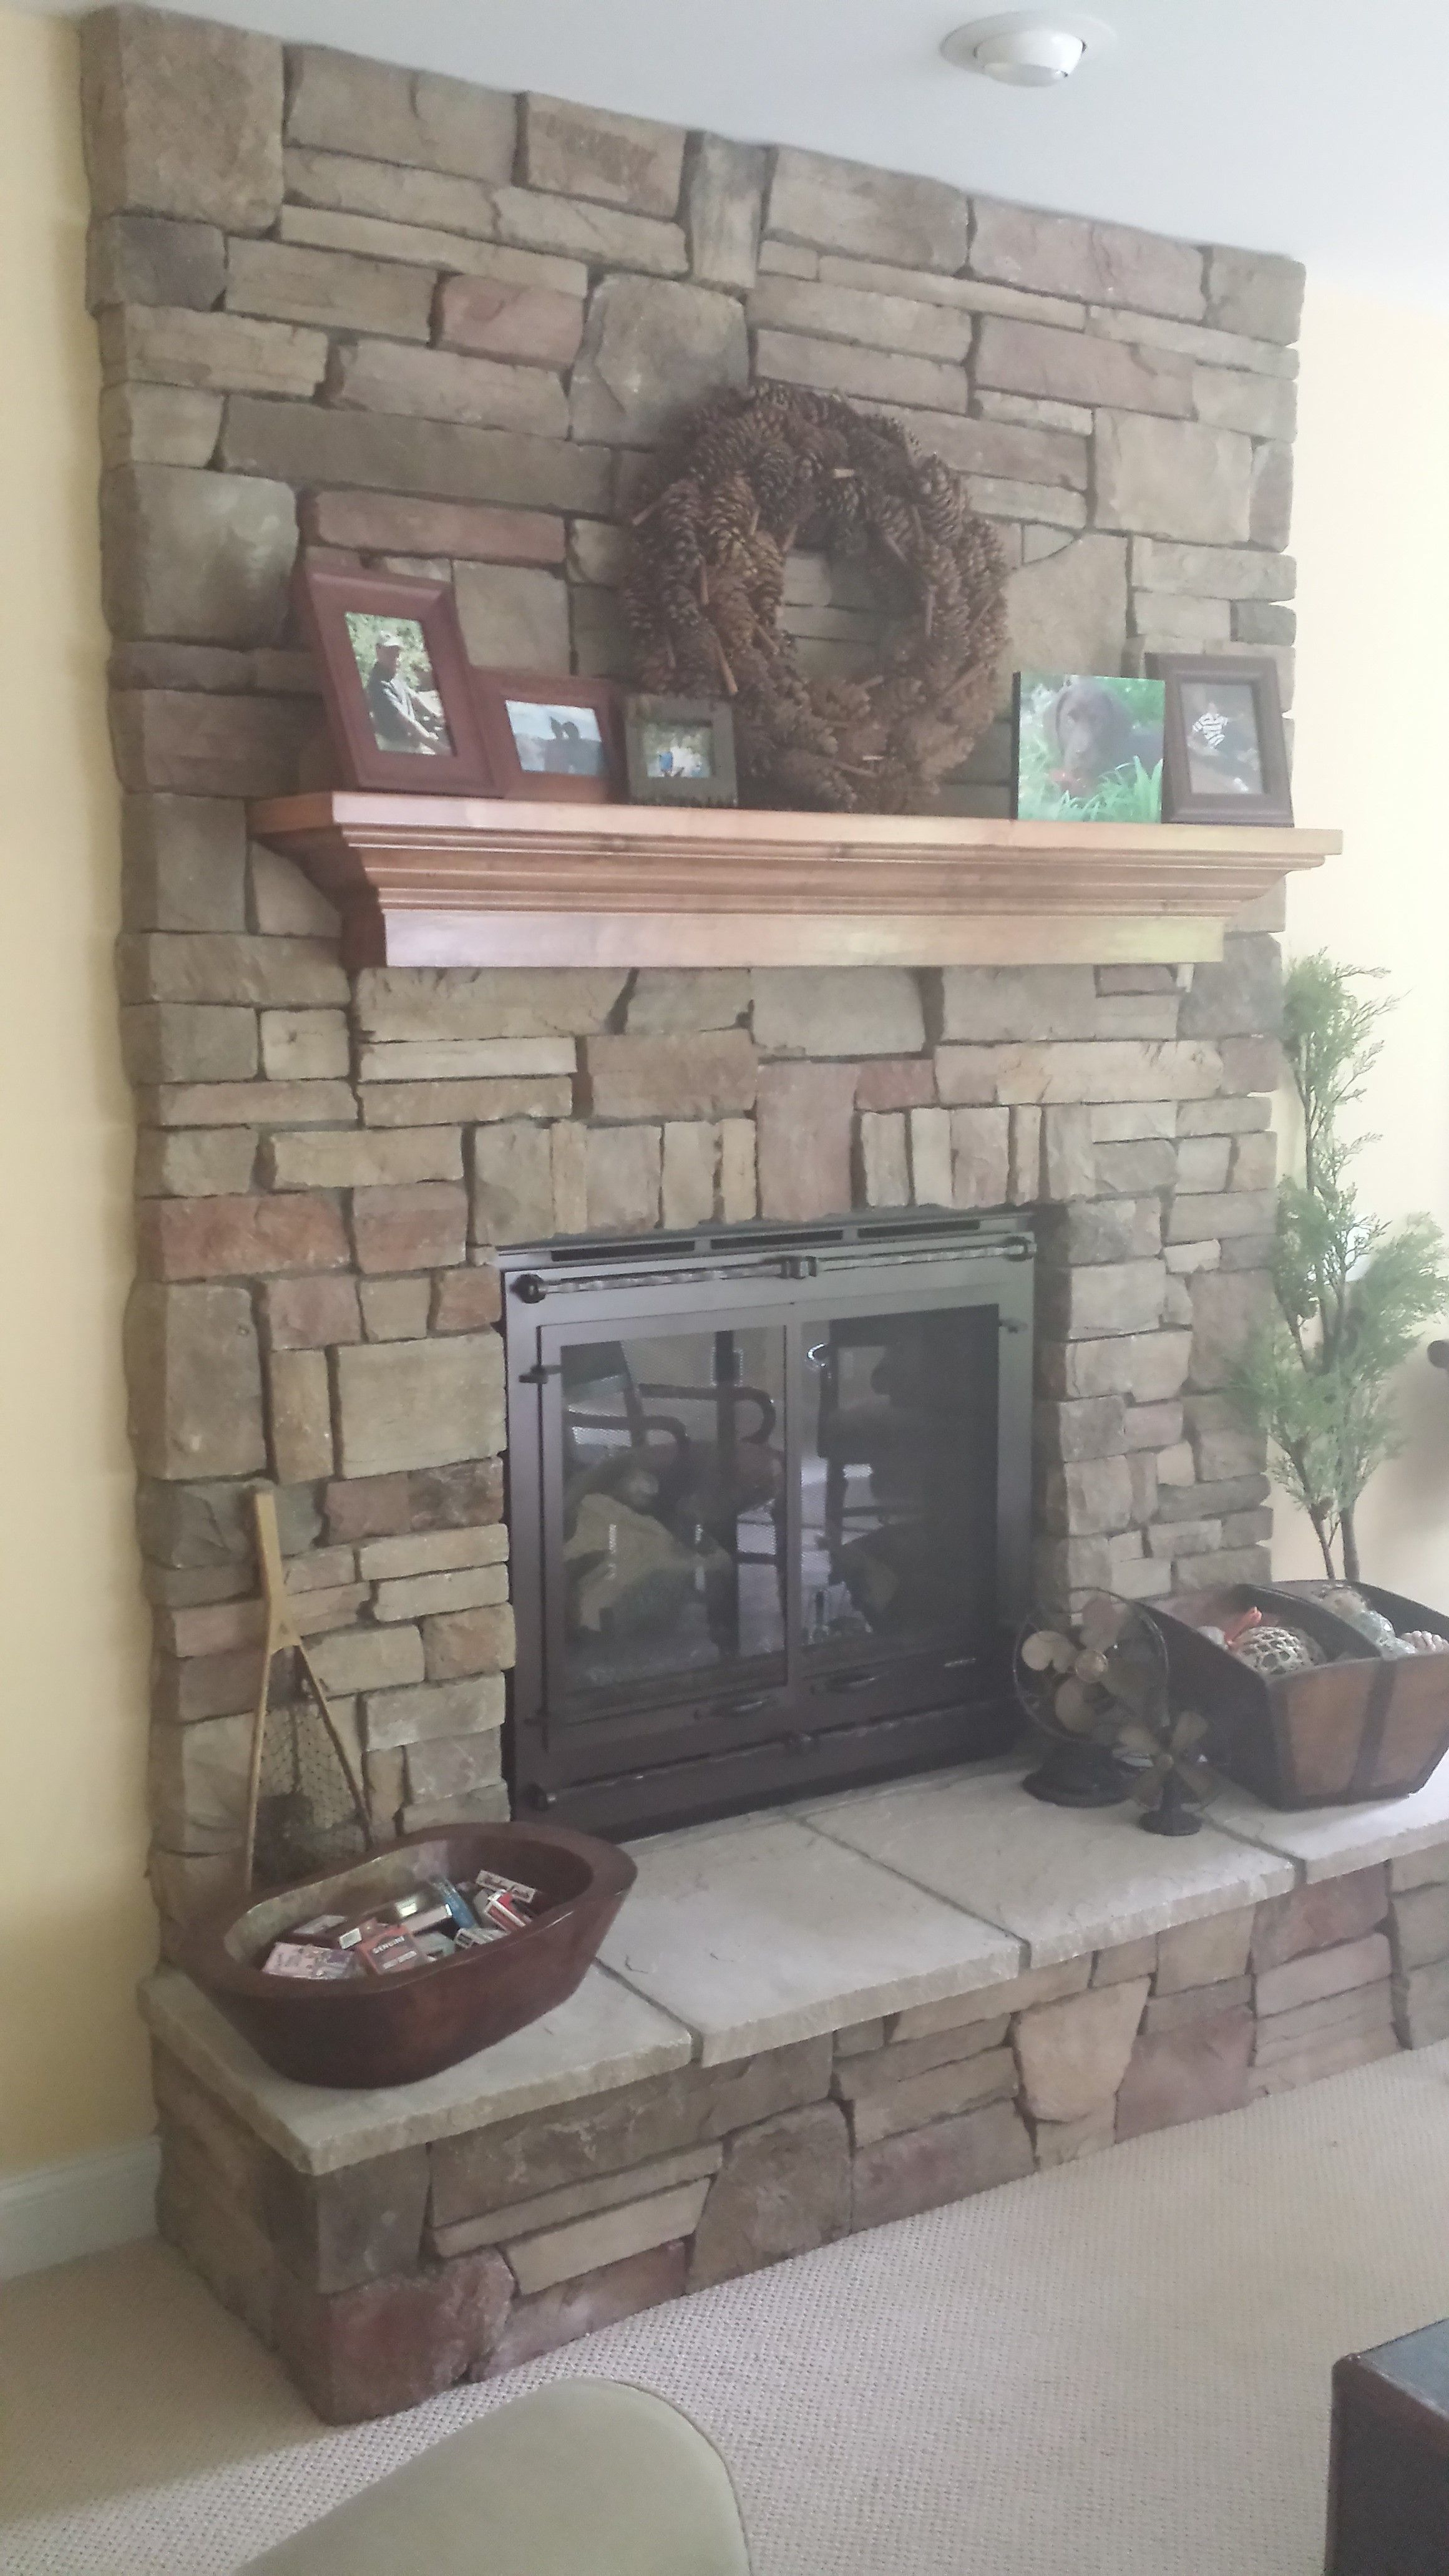 Cultured stone fireplace surround - Chardonnay Country Ledgestone By Boral Cultured Stone With Wood Mantel